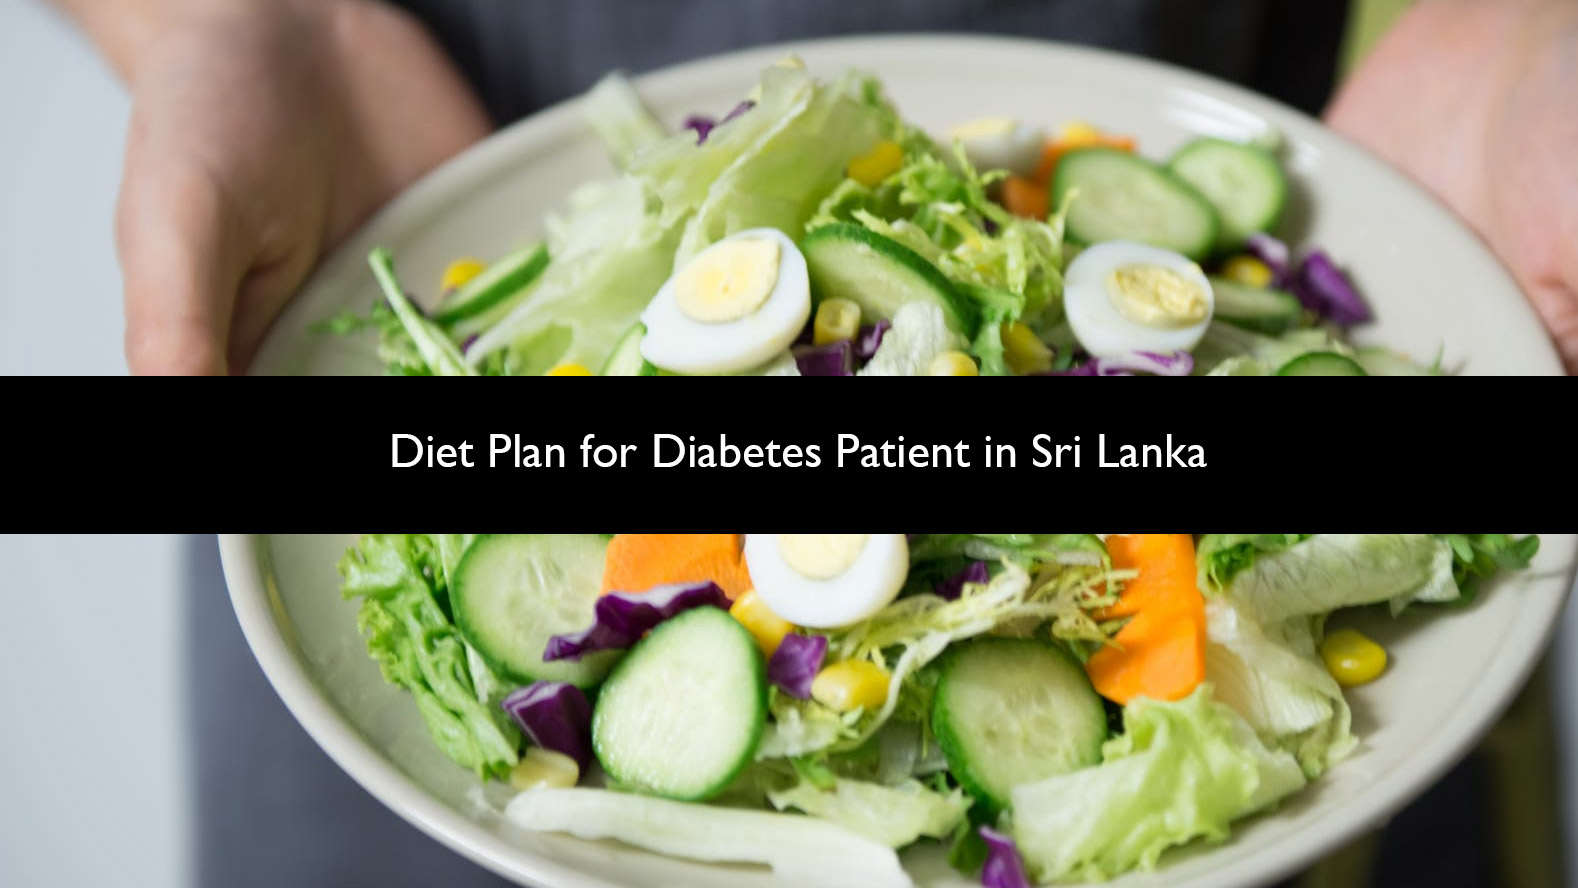 Diet Plan for Diabetes Patient in Sri Lanka V2